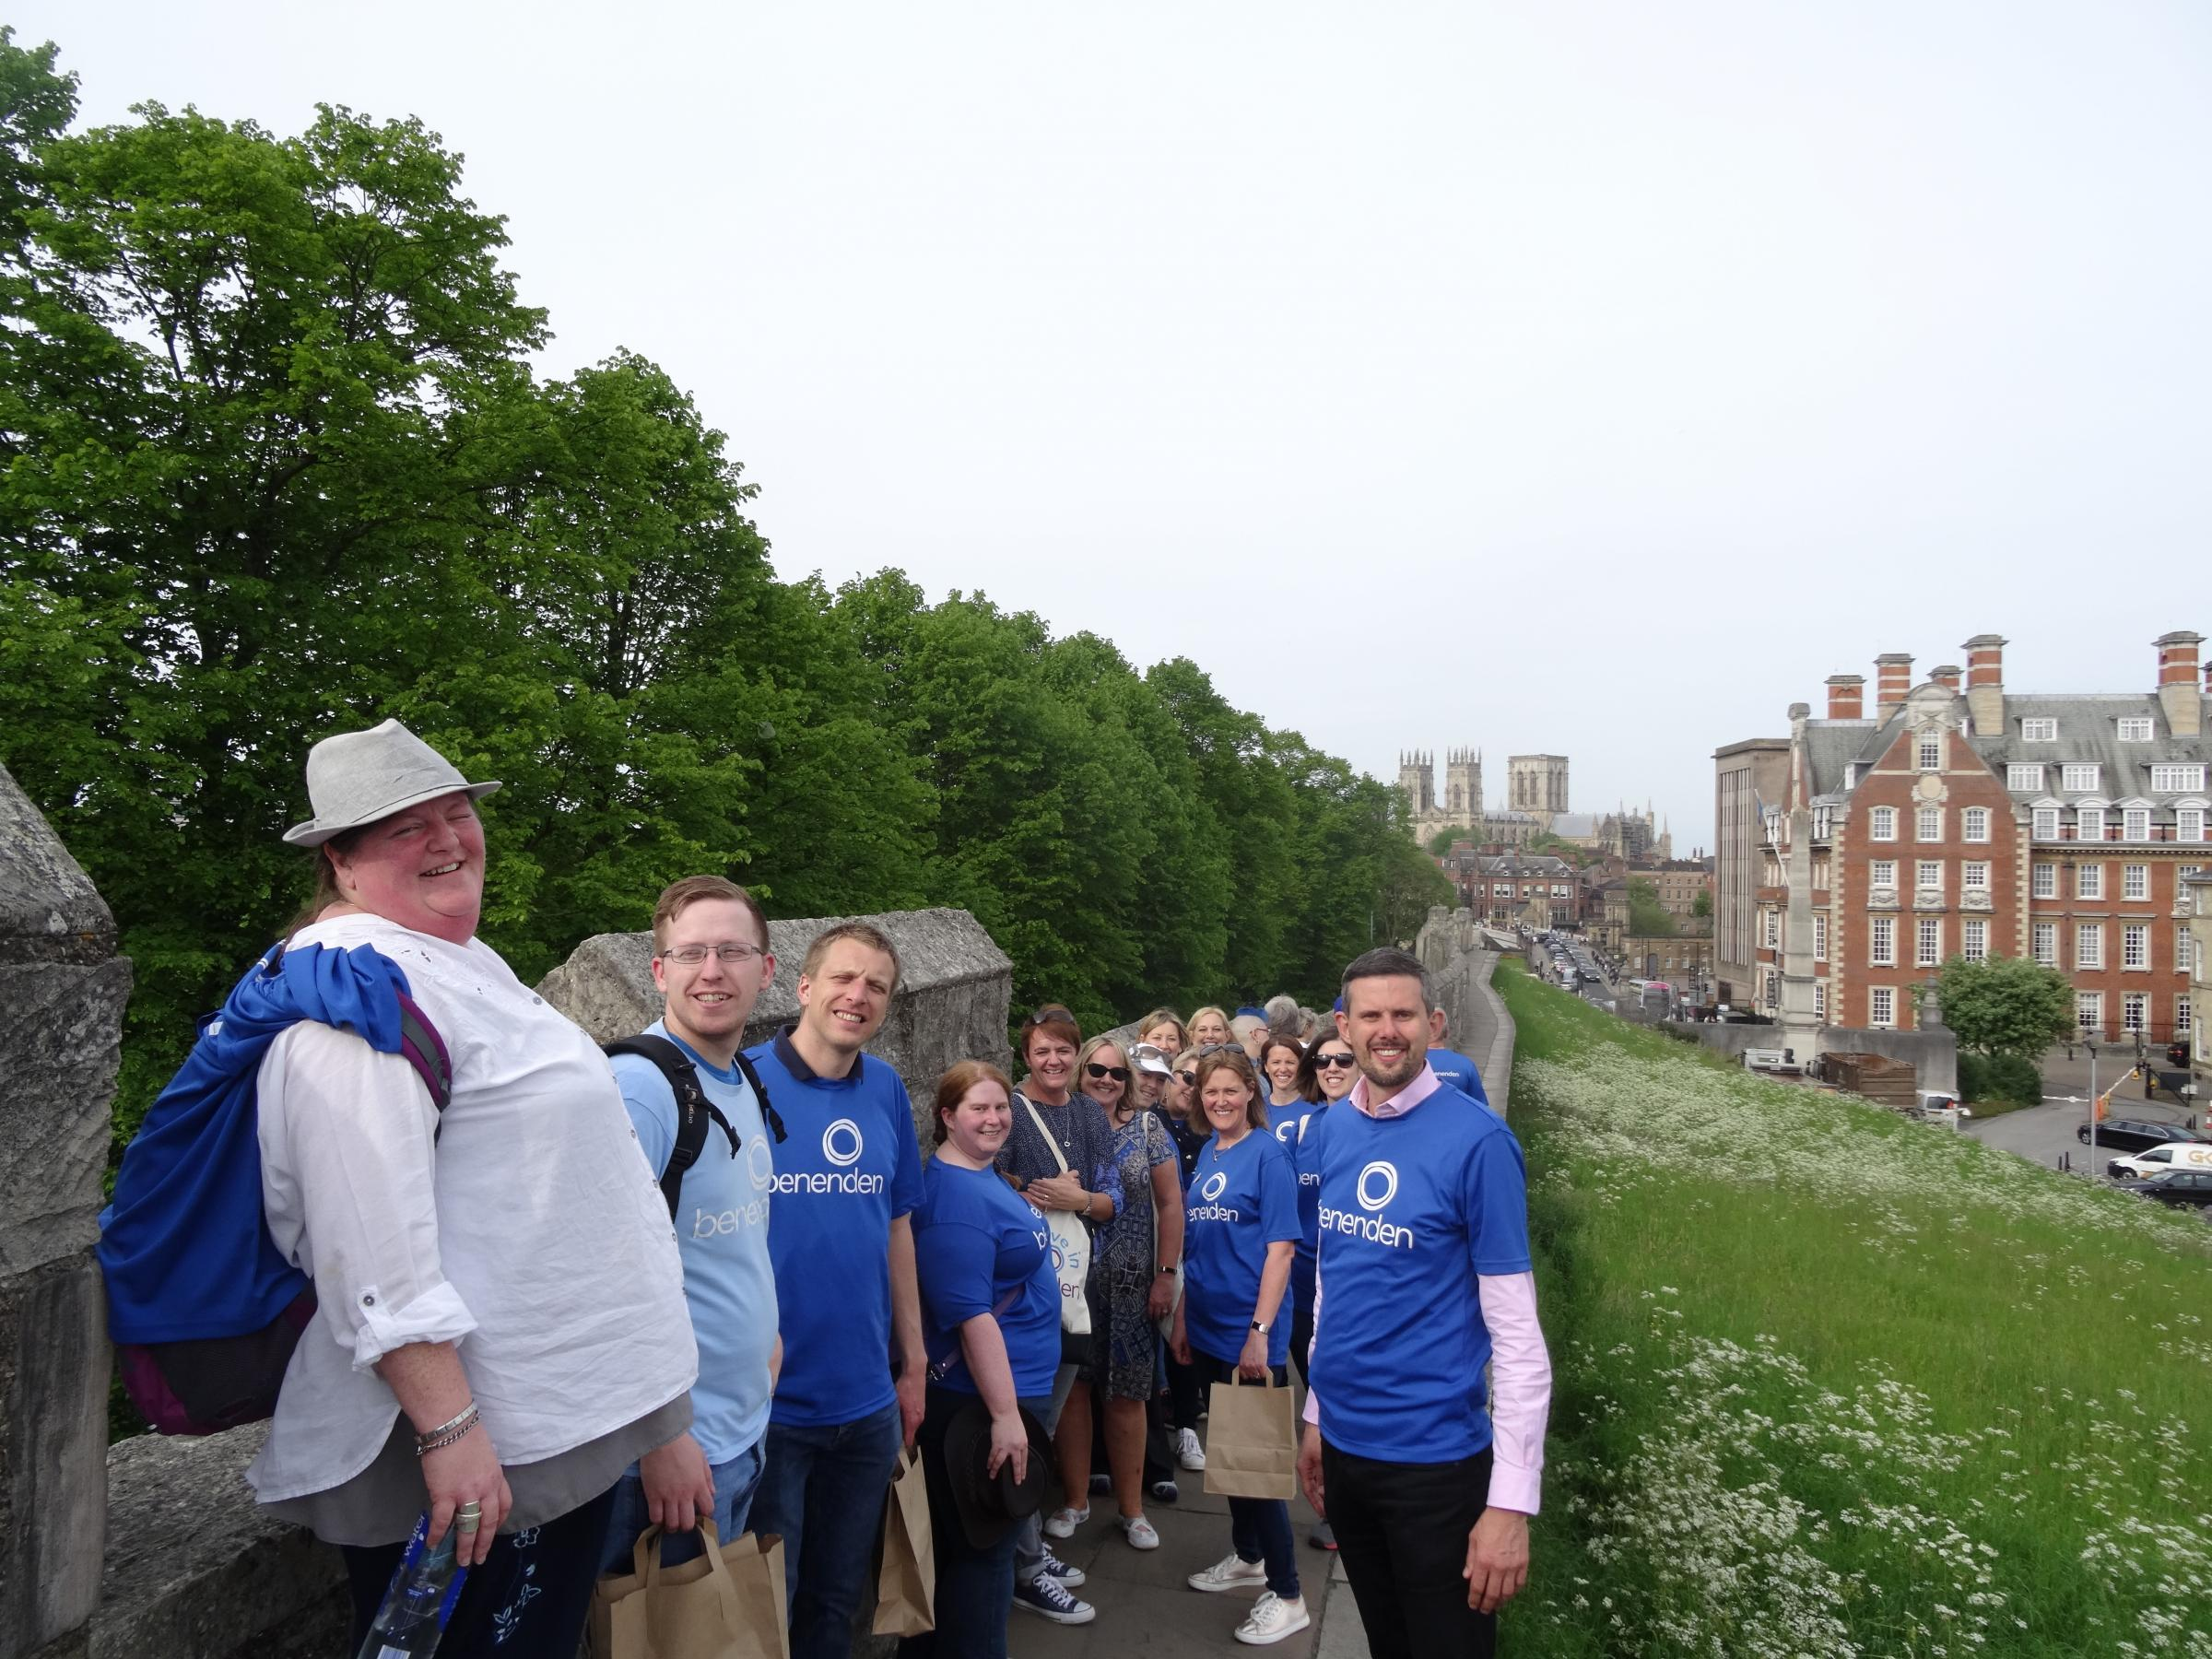 Walking proud, Benenden staff at the start of their walk round the Bar Walls for York Mind